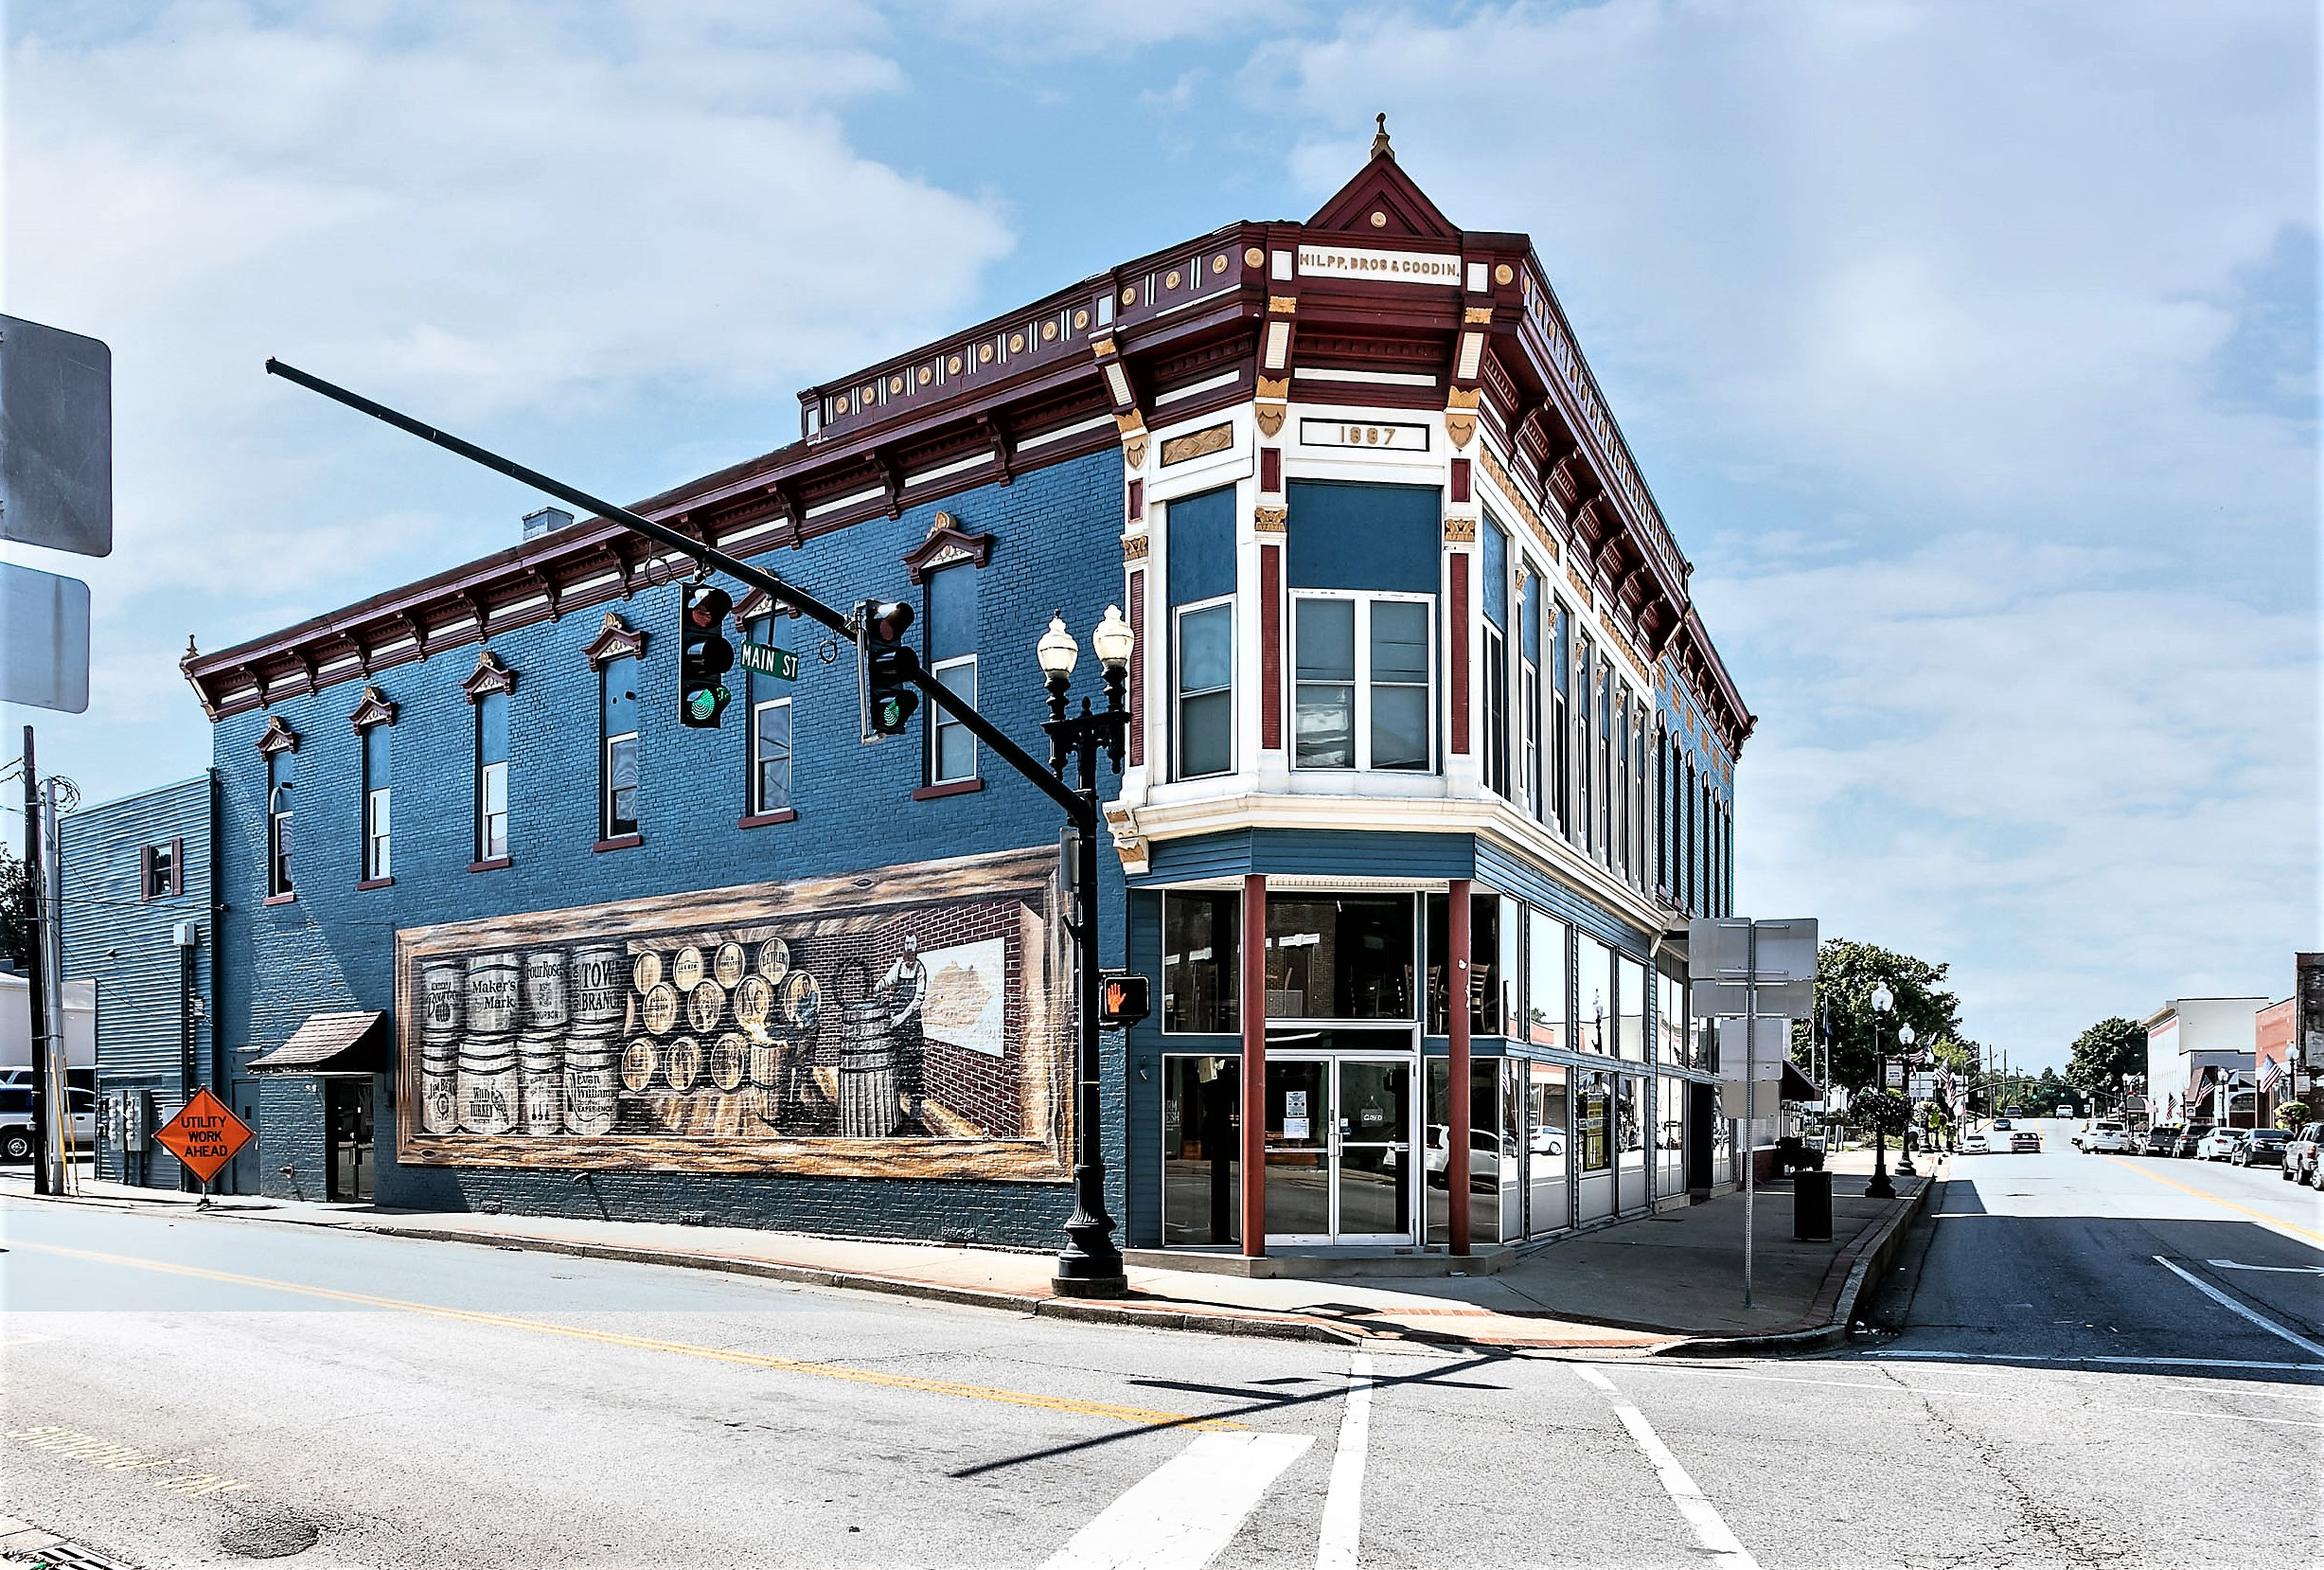 202 W. Main Street – Lebanon Complete Walk-Out Real Estate & All Restaurant Contents, Inventory & Equipment Plus 7 Rental Units